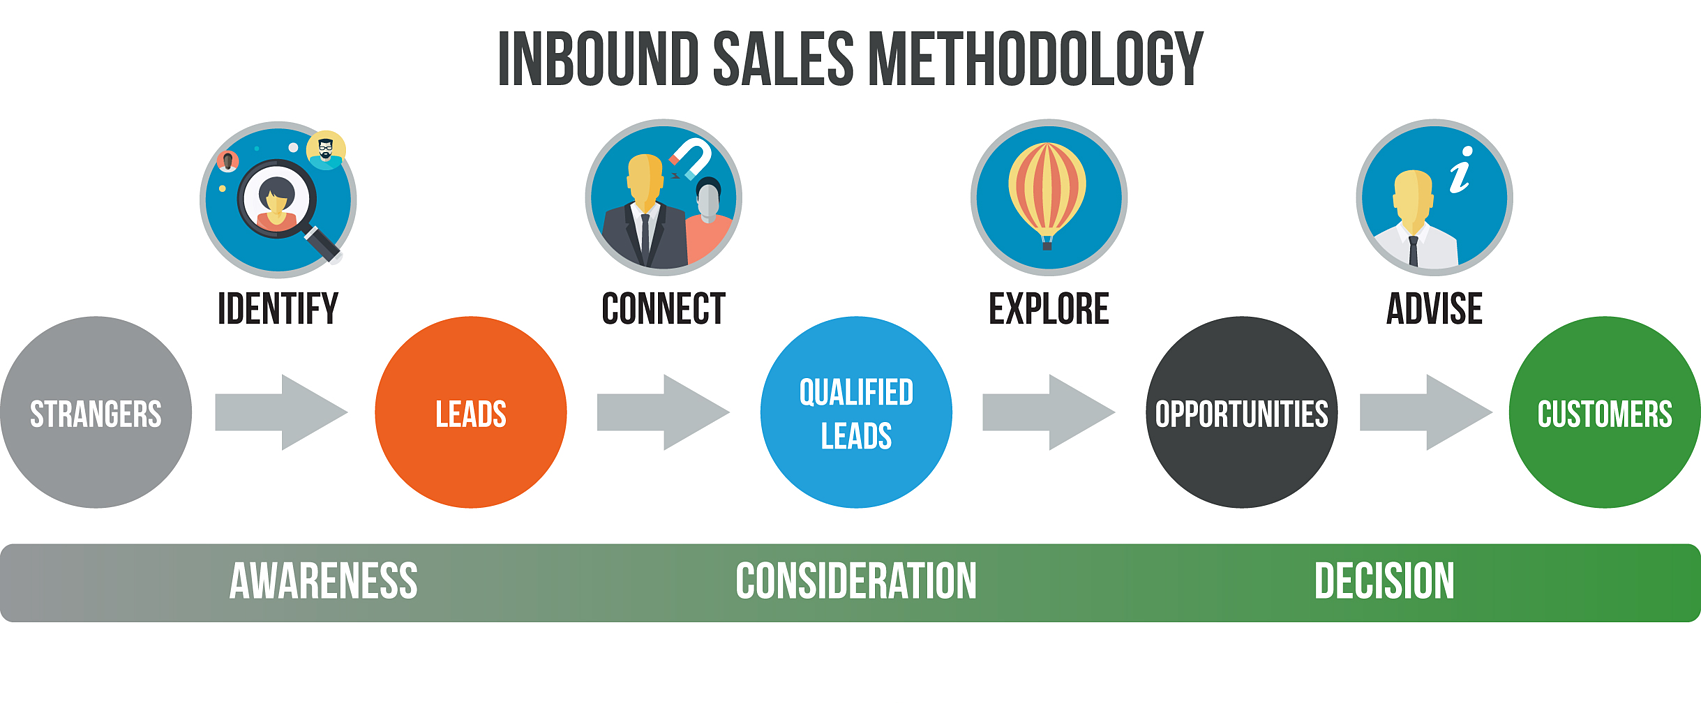 HubSpot-Inbound-Sales-Methodology.png